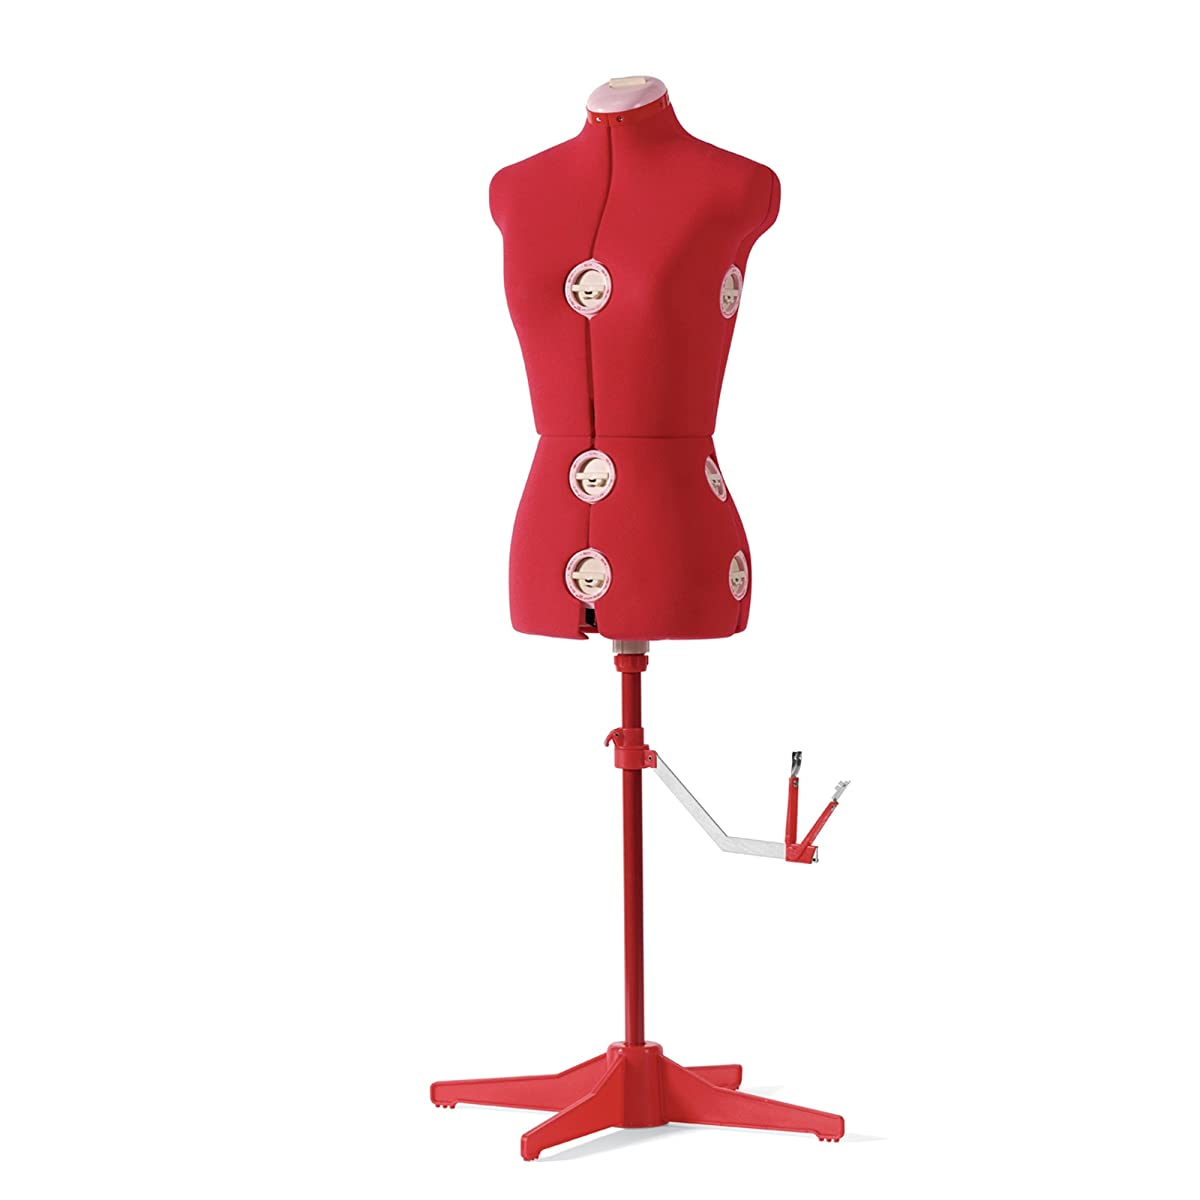 SINGER 12-Dial Fabric-Backed Large Adjustable Dress Form, Red